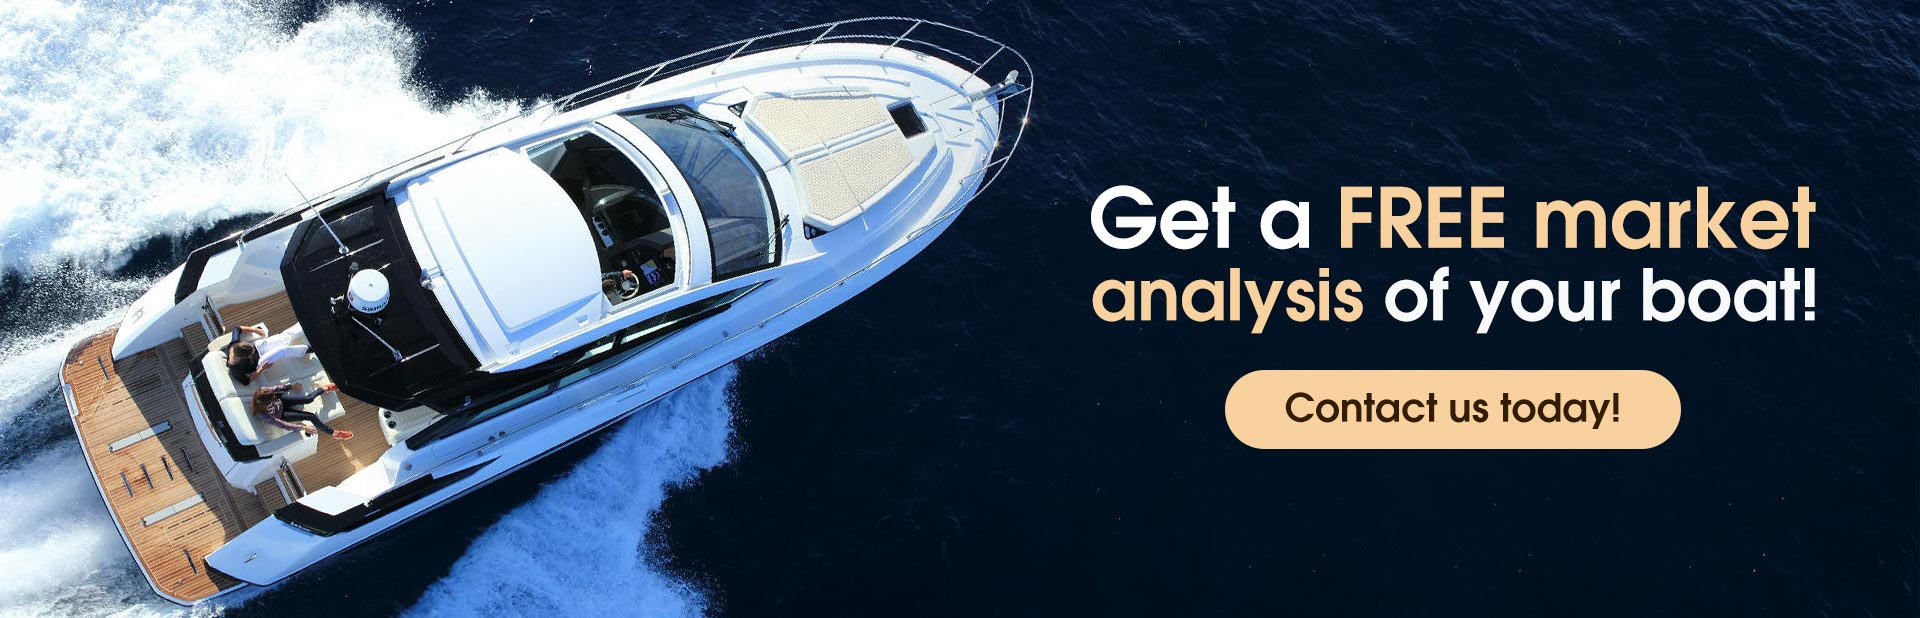 Contact us today to get a free market analysis of your boat!